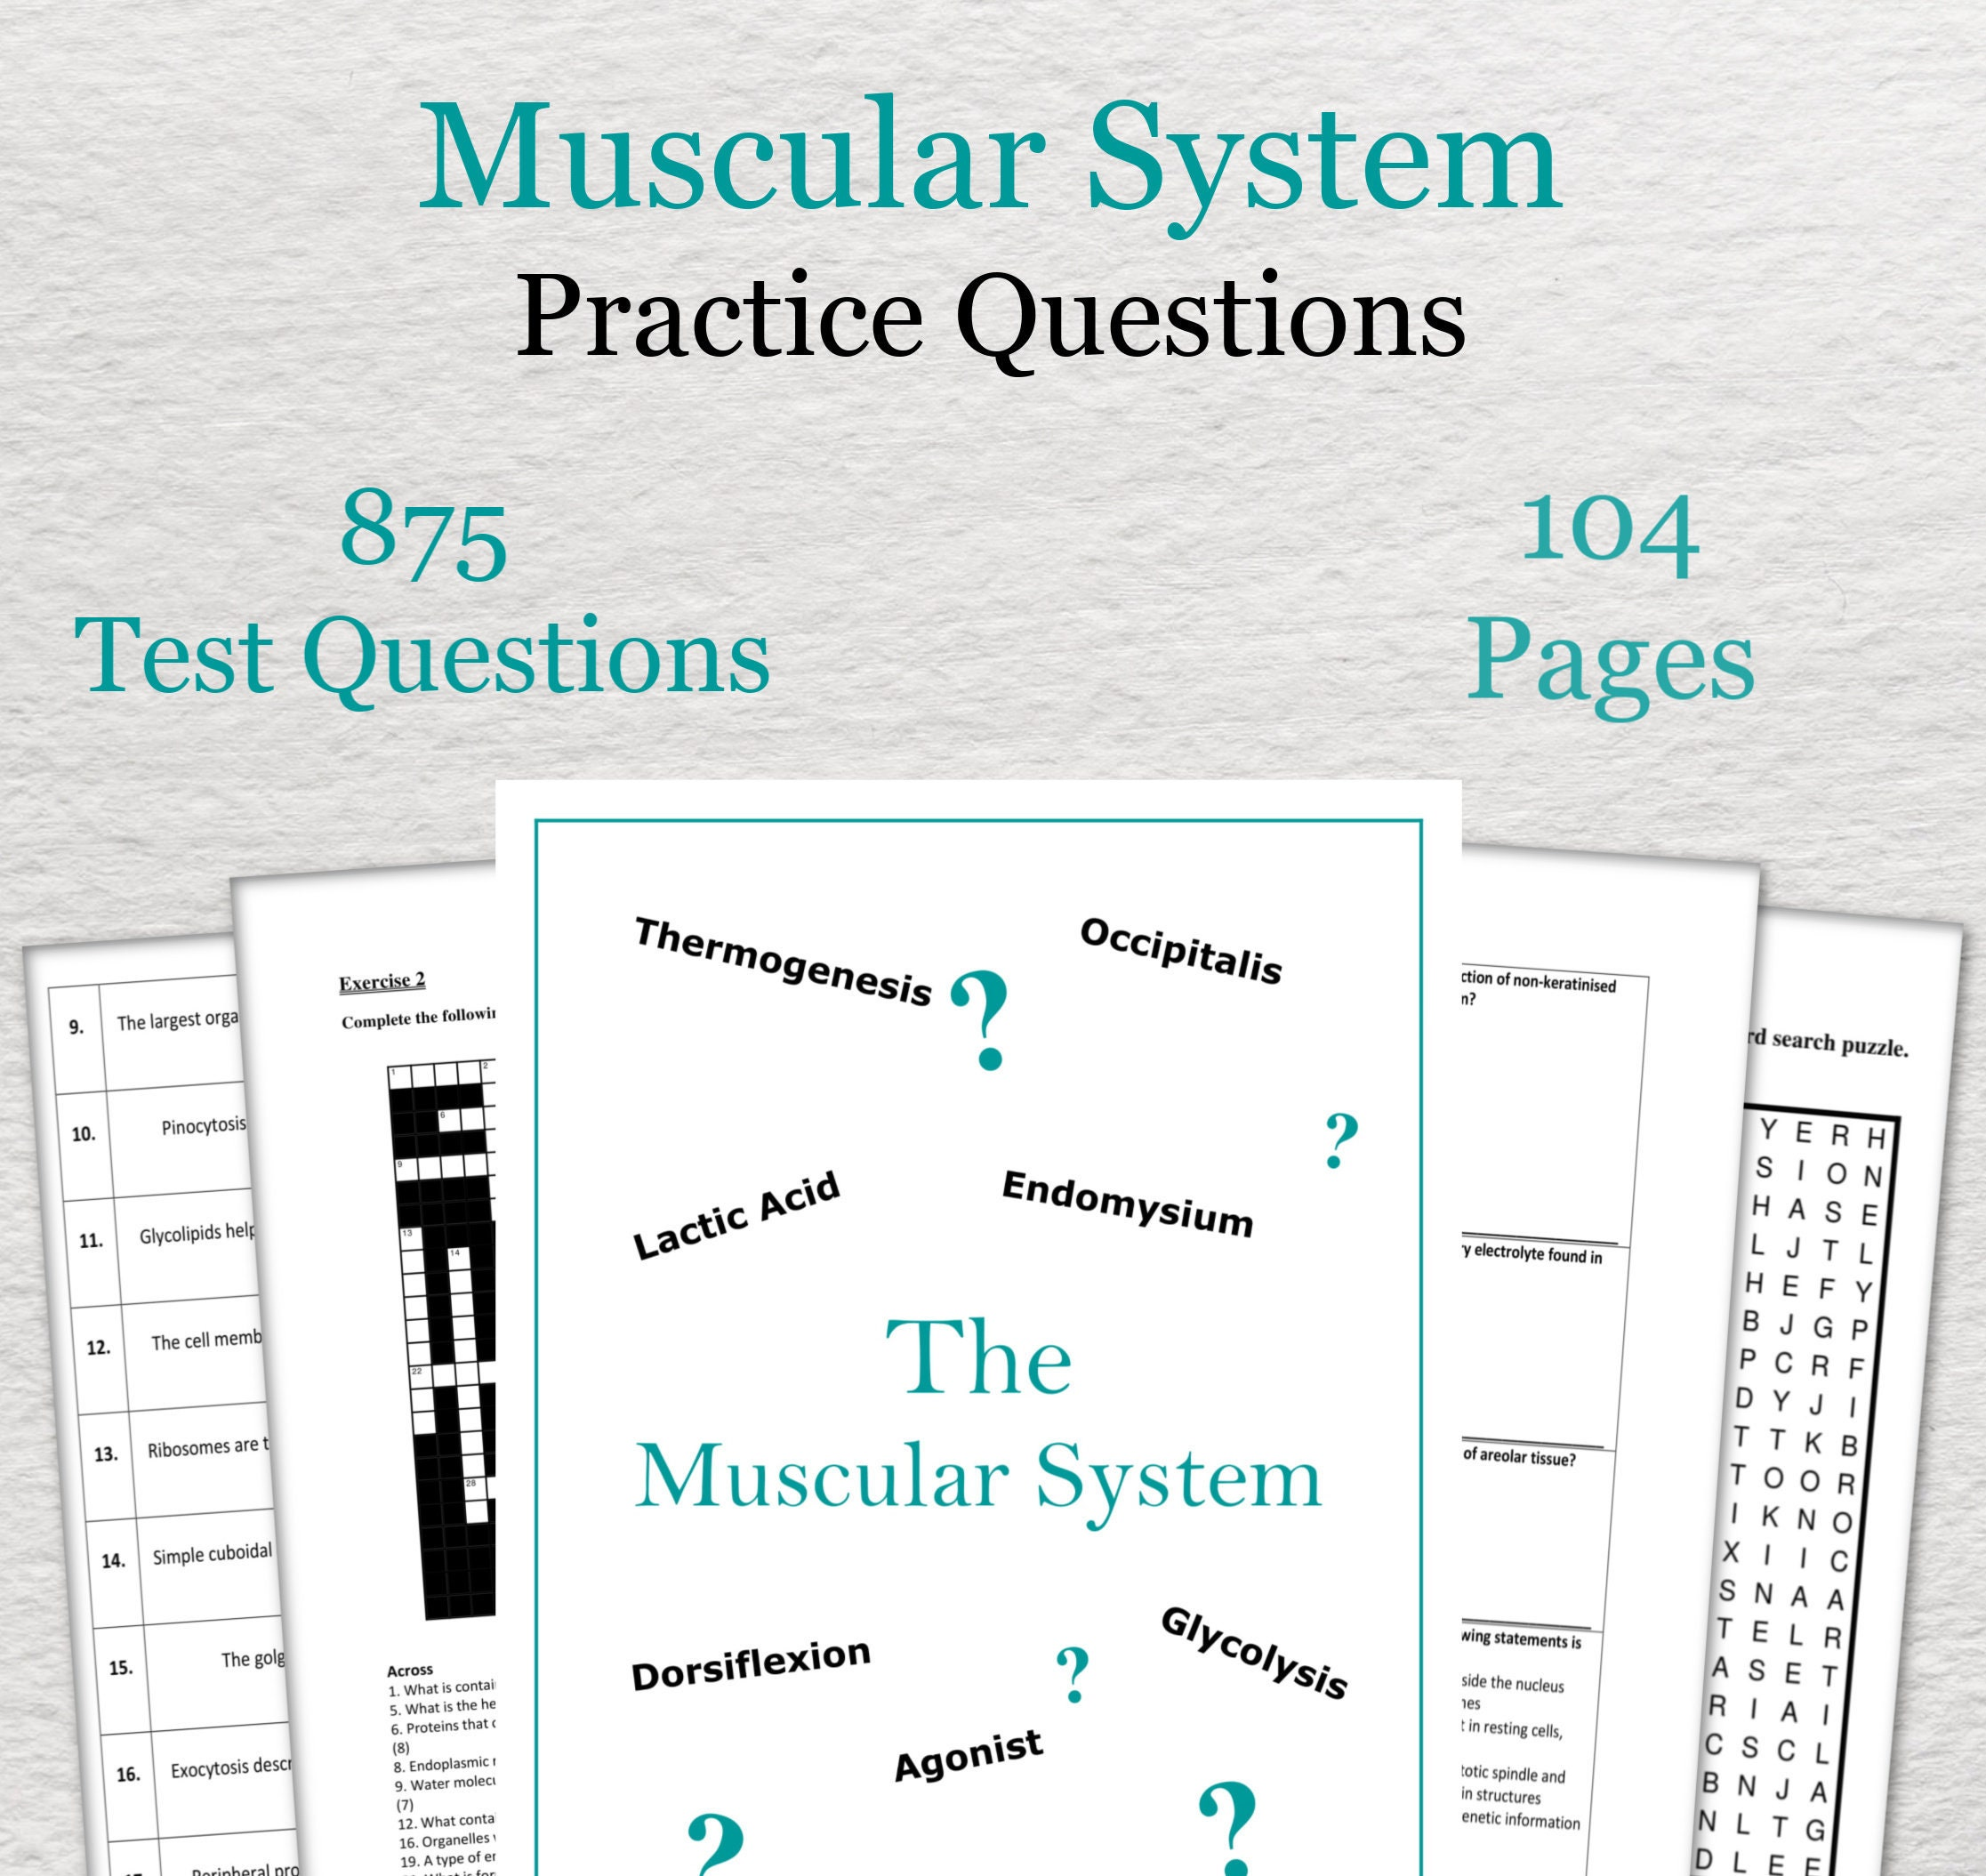 Muscular System Practice Questions - Anatomy and Physiology Revision